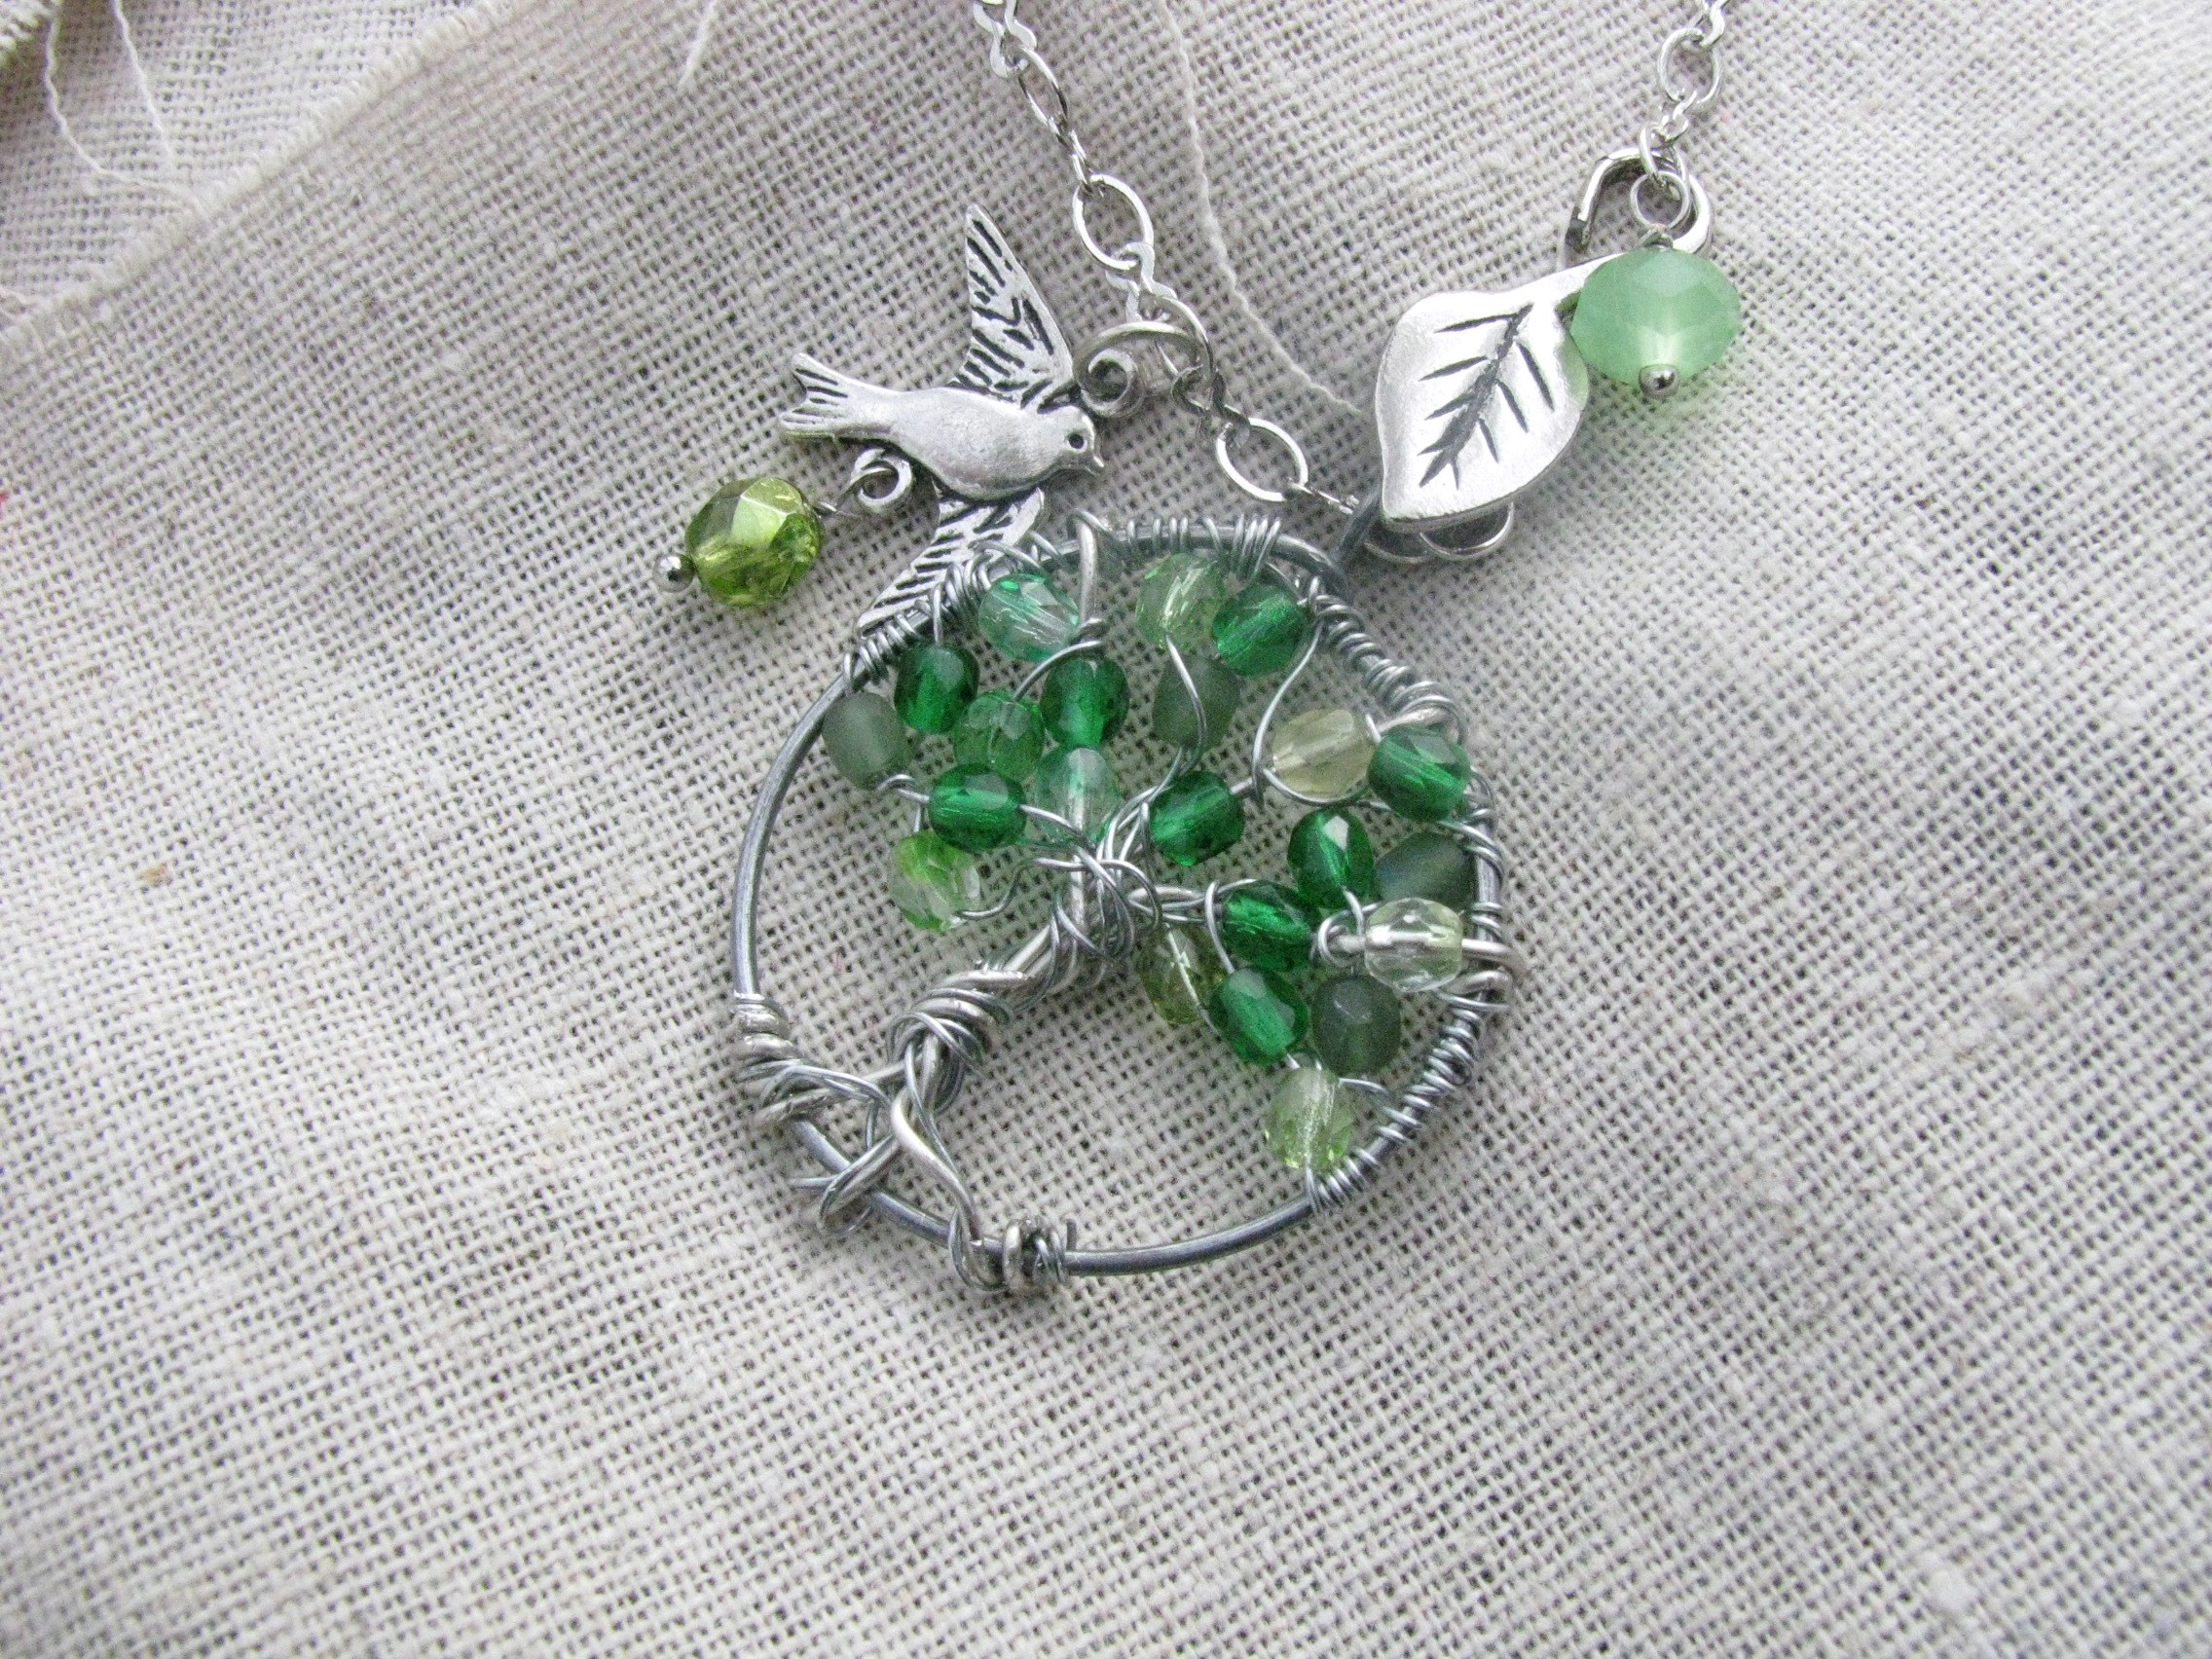 How to make a Tree Pendant